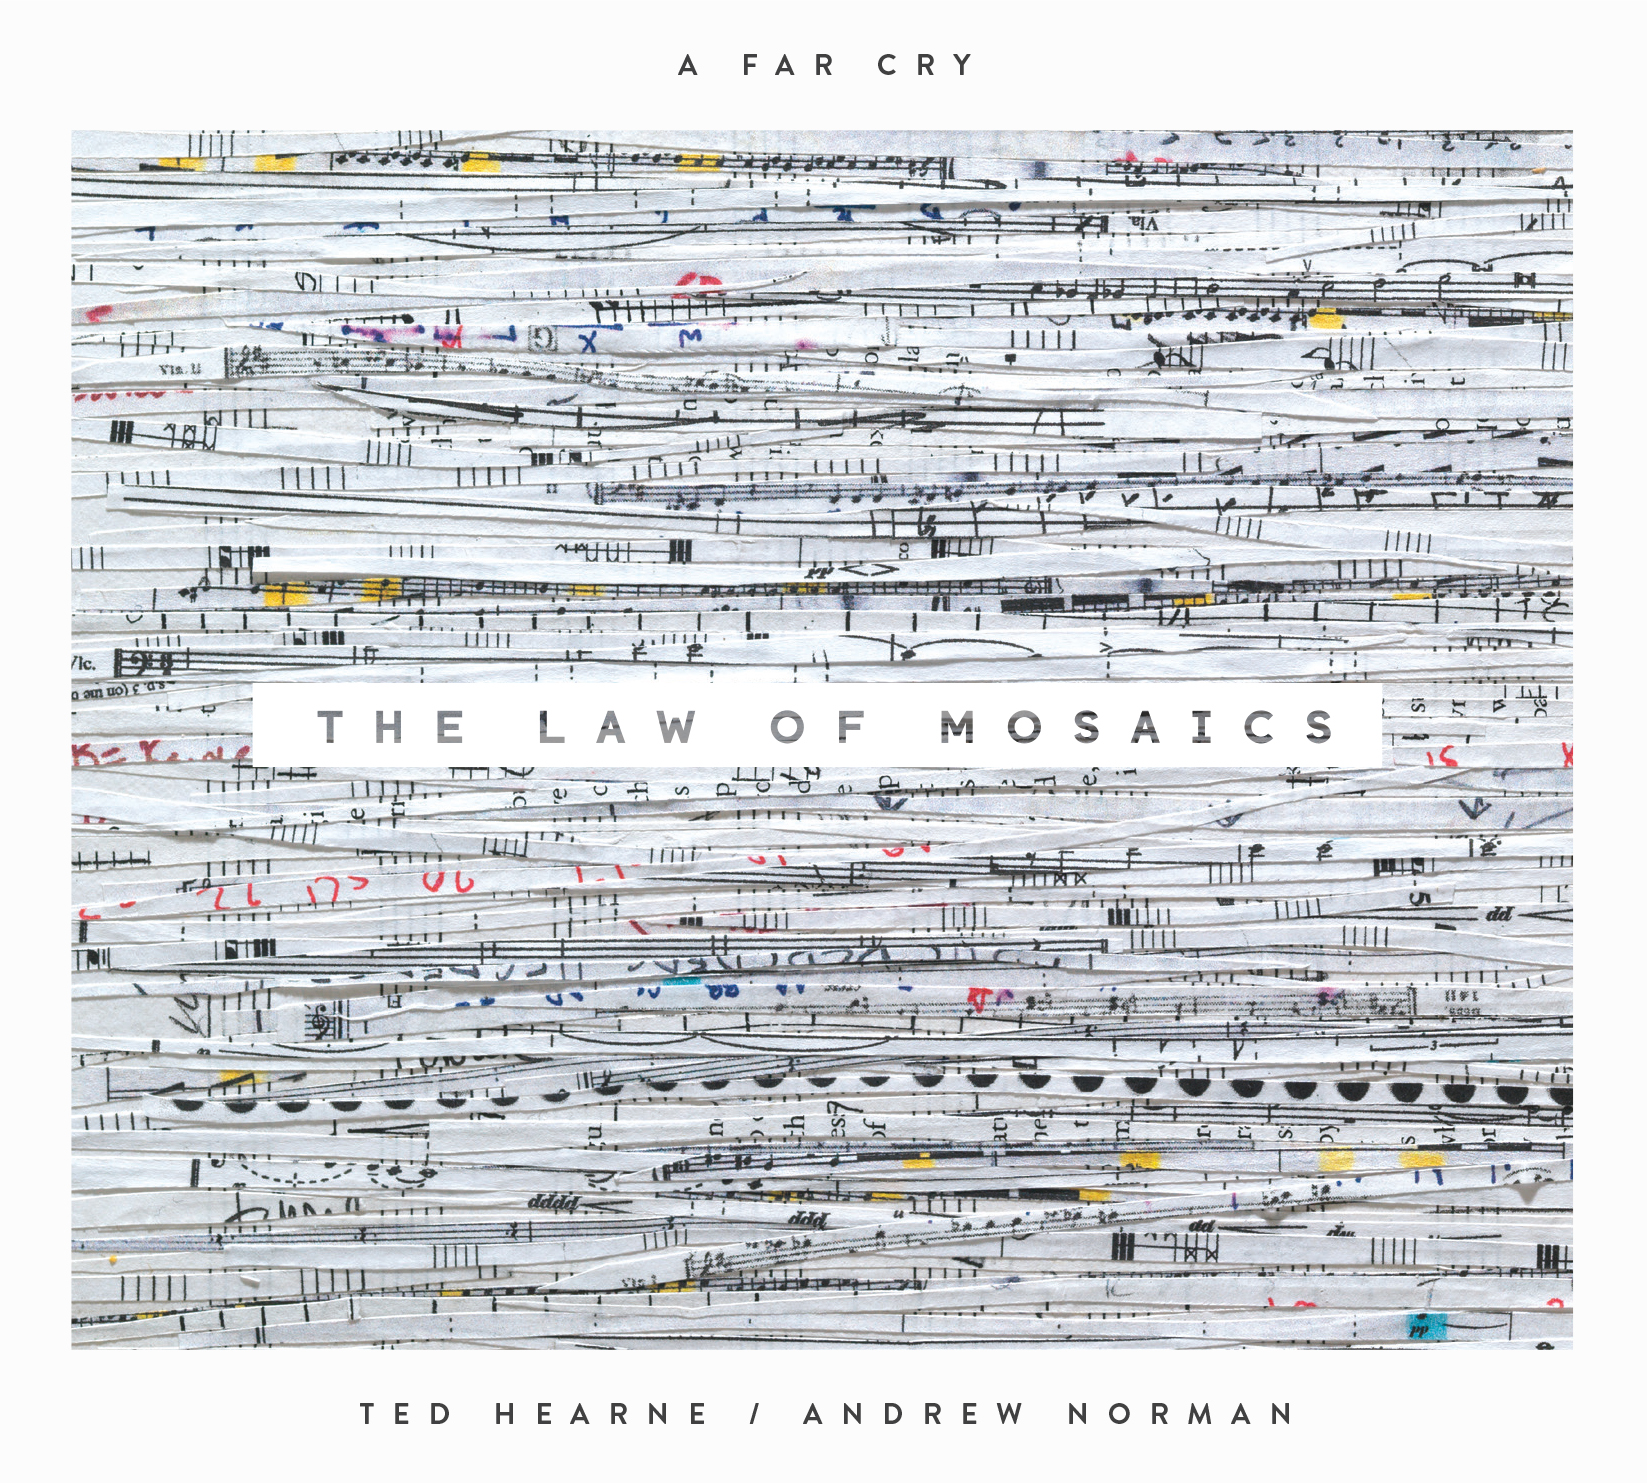 The Law of Mosaics: music of Ted Hearne and Andrew Norman   (Crier Records, 2013) album art by Rachel Perry Welty design by Laura Grey